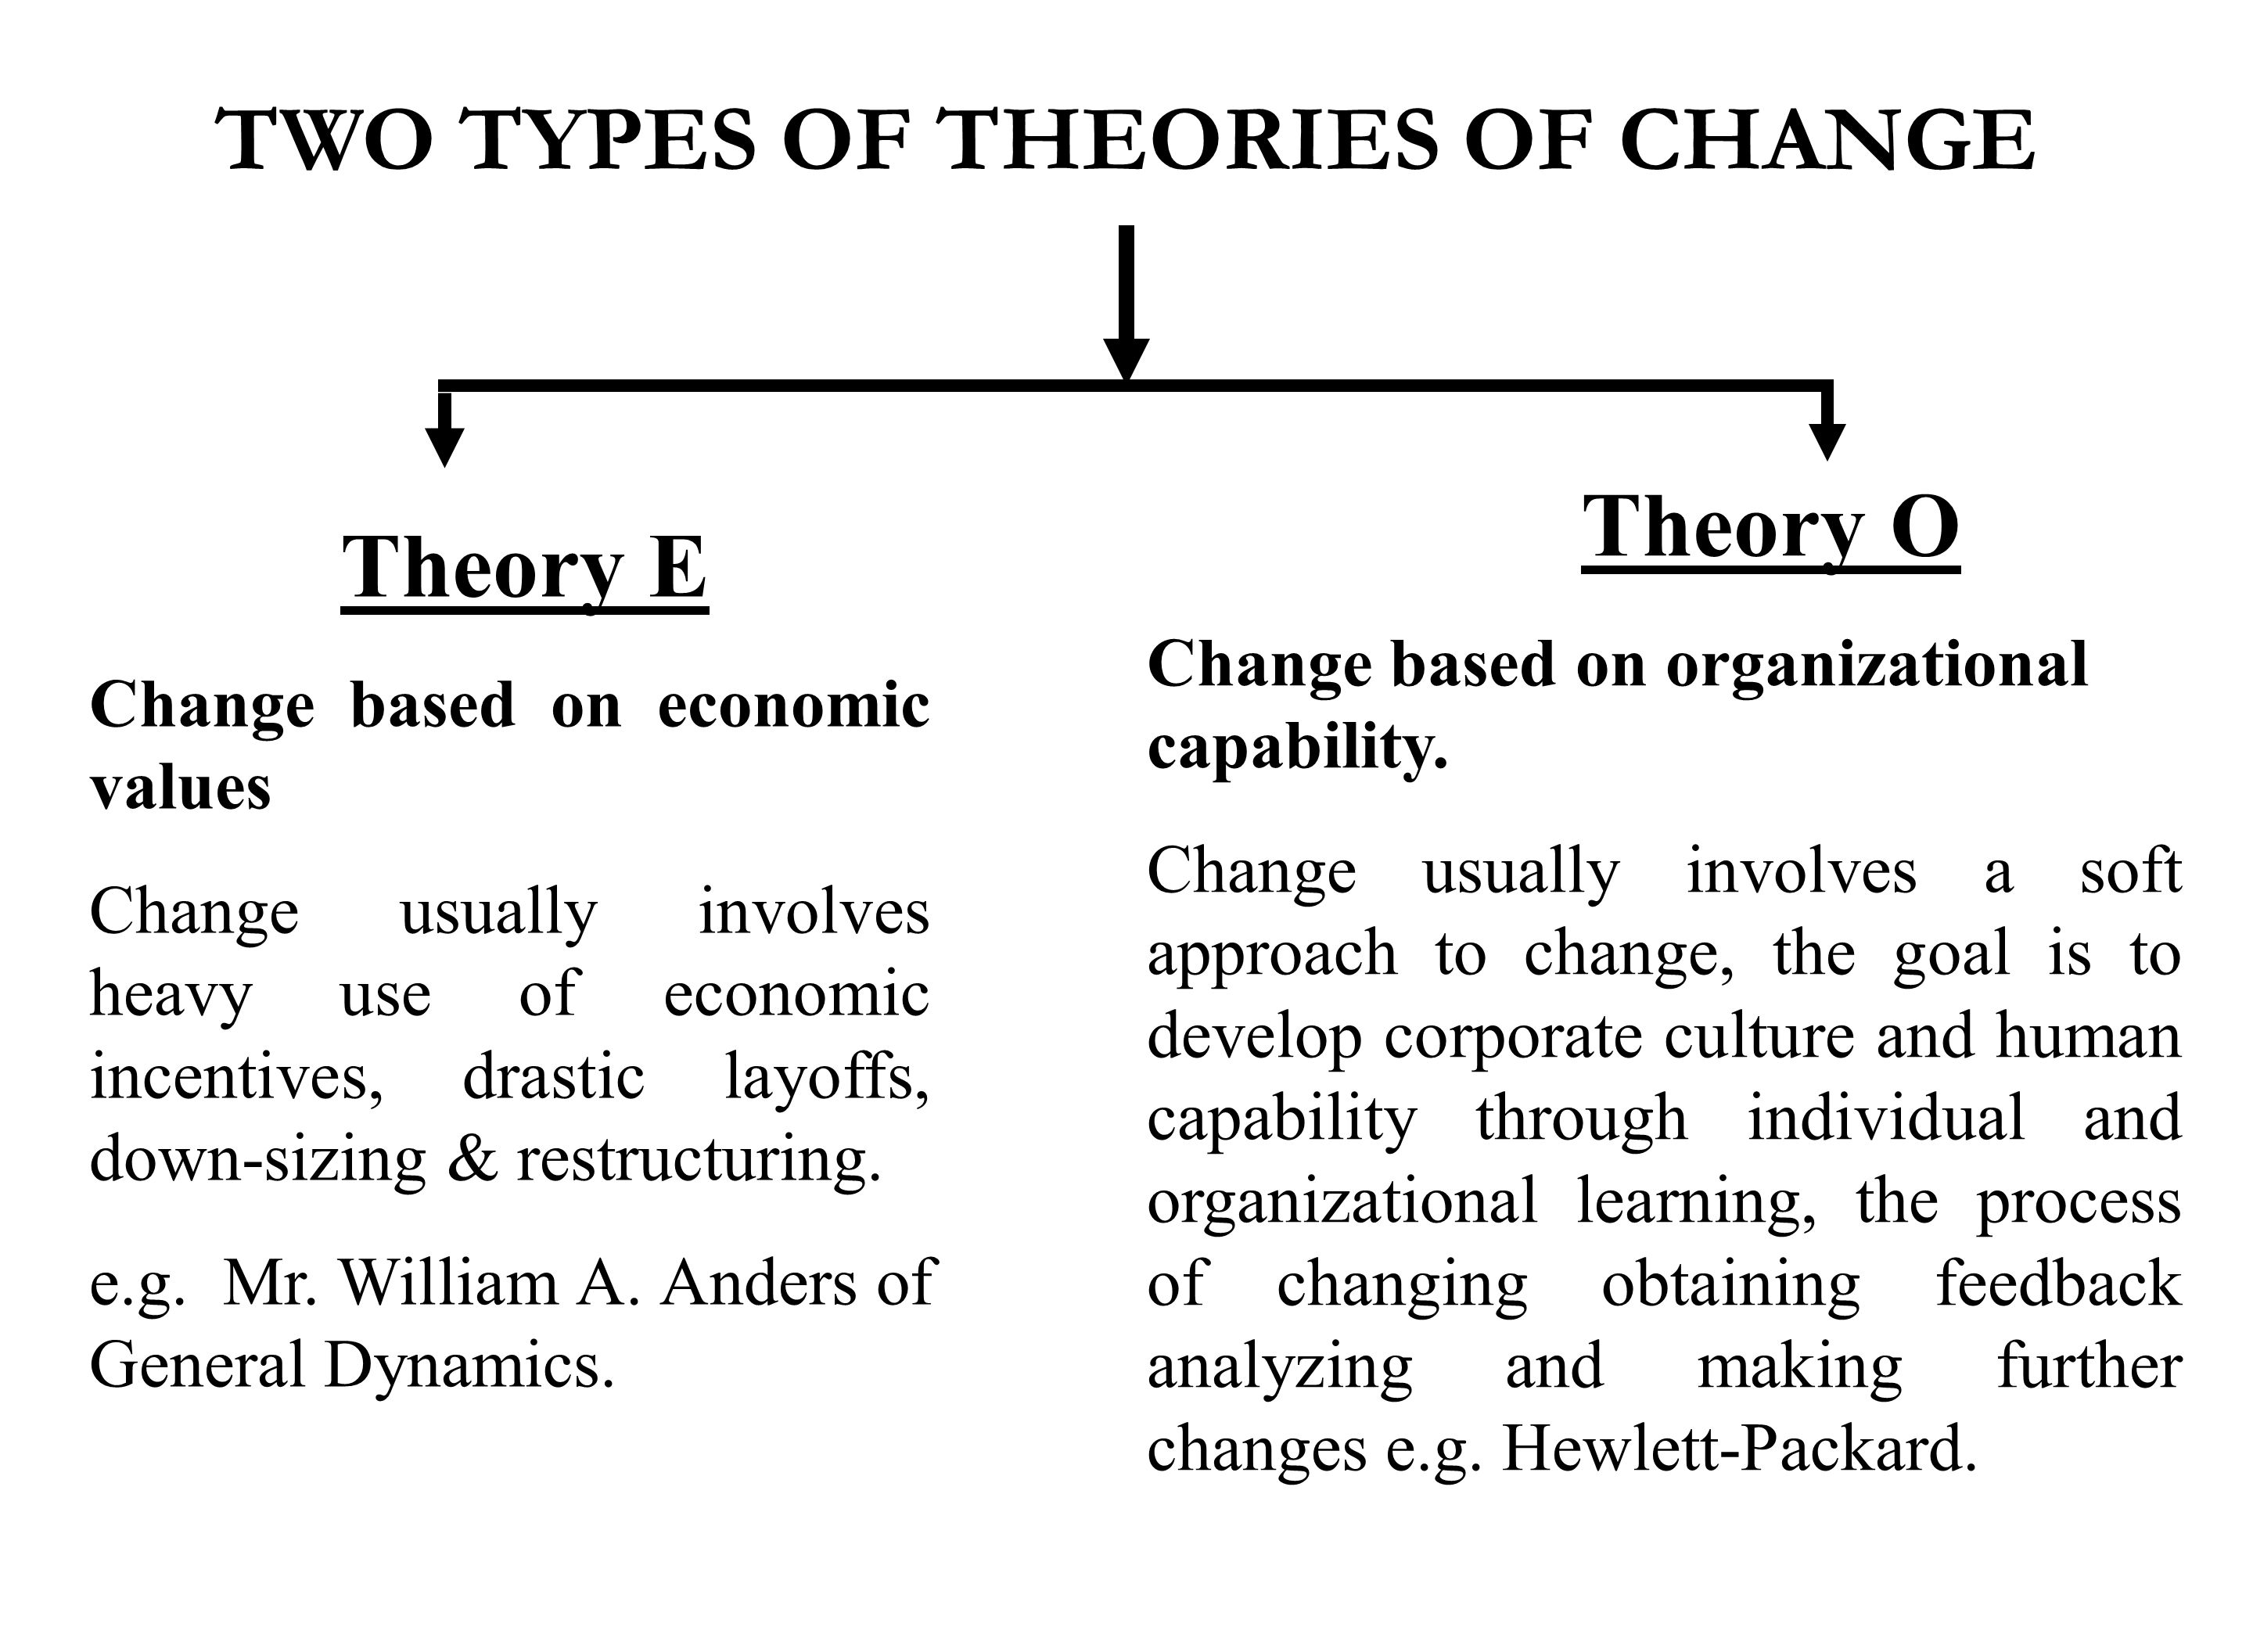 Dimensions of change Goals Leadership Focus Process Reward System Use of Consultants Theory E maximize shareholder value engage change from the top down emphasize structure and systems plan and establish programs motivate through financial incentives consultants analyze problems and shape solutions Theory O develop organizational capabilities.